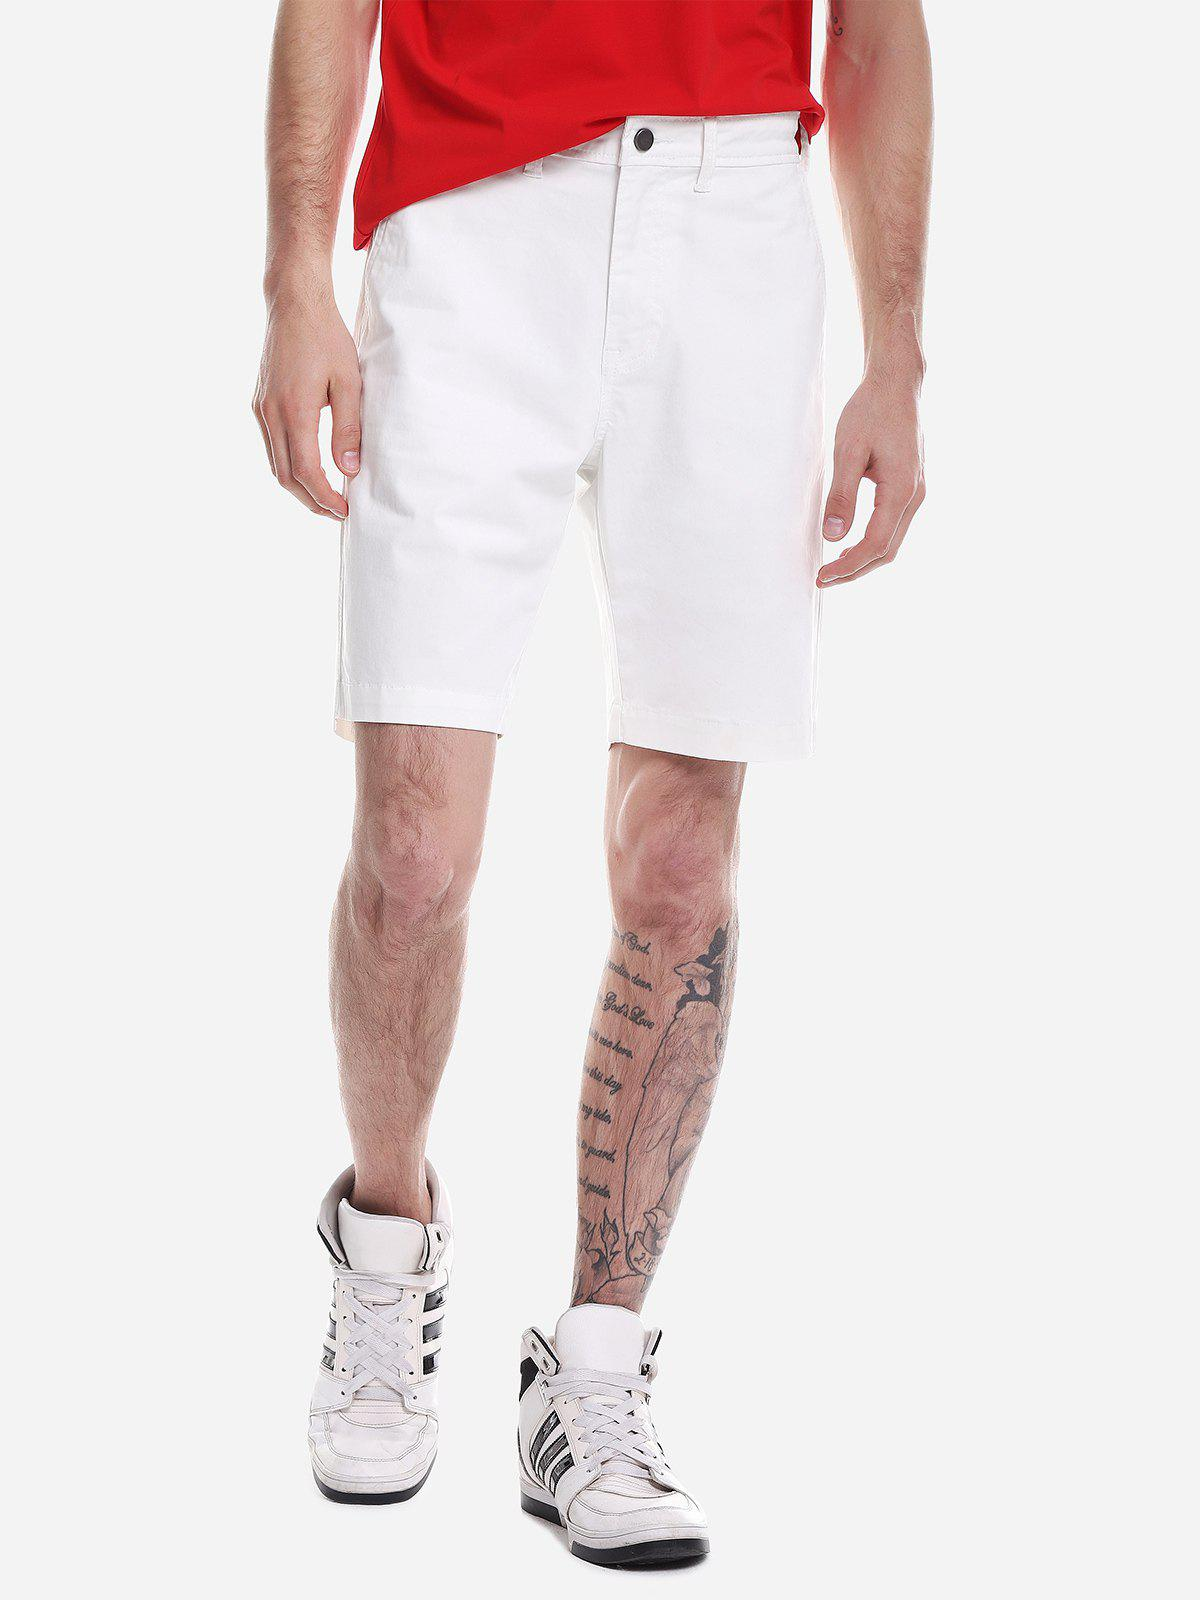 Unique Zip Fly Shorts